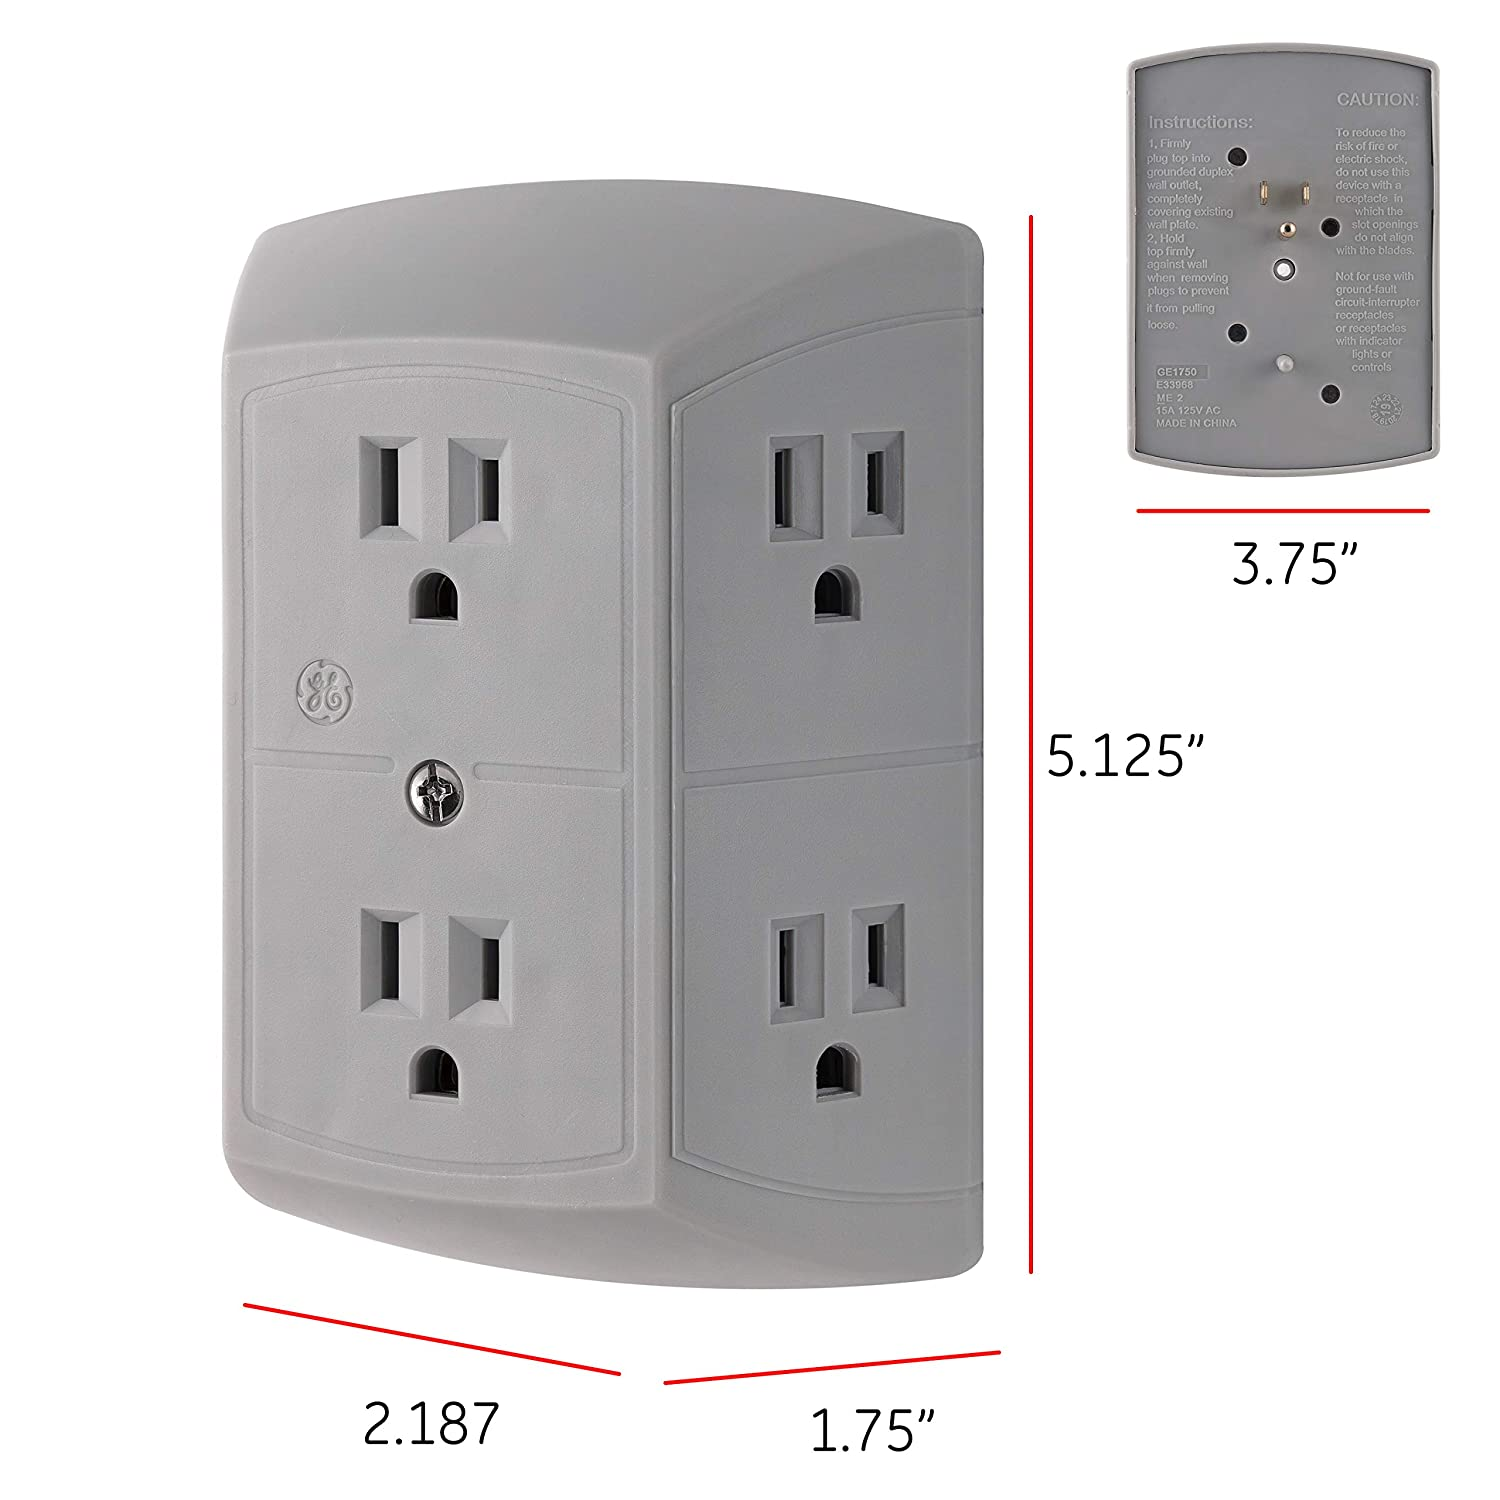 Gray 1 Pack 3 Prong Quick /& Easy Install Grey Power Adapter for Home Office Multi Outlet Wall Charger 45200 Extra Wide Spaced Cell Phone GE 6 Plug Strip